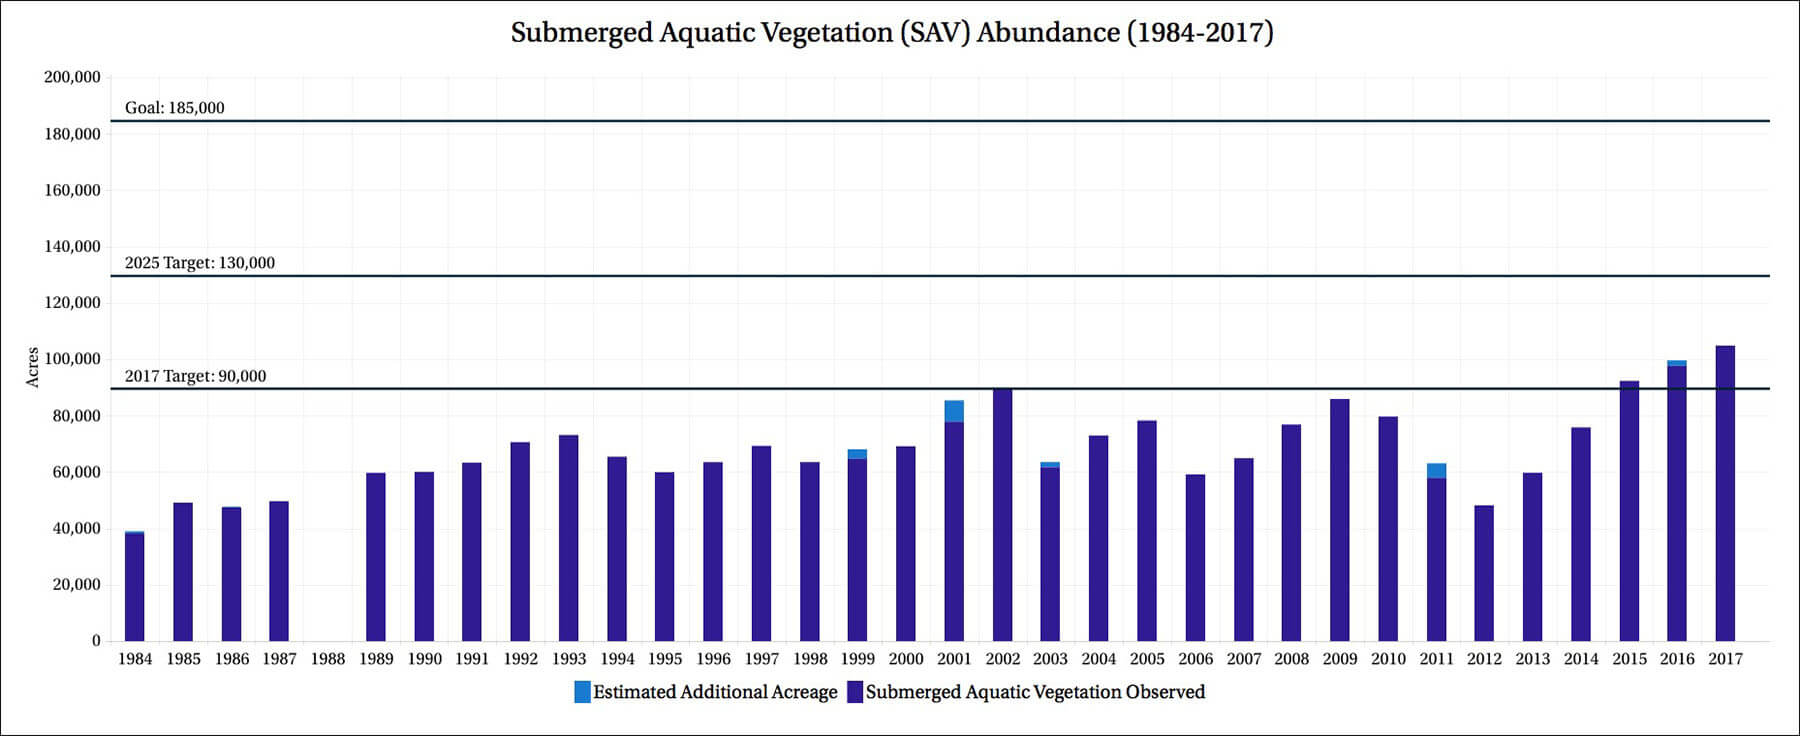 A bar chart depicting annual underwater grass abundance in the Chesapeake Bay between 1984 and 2017.